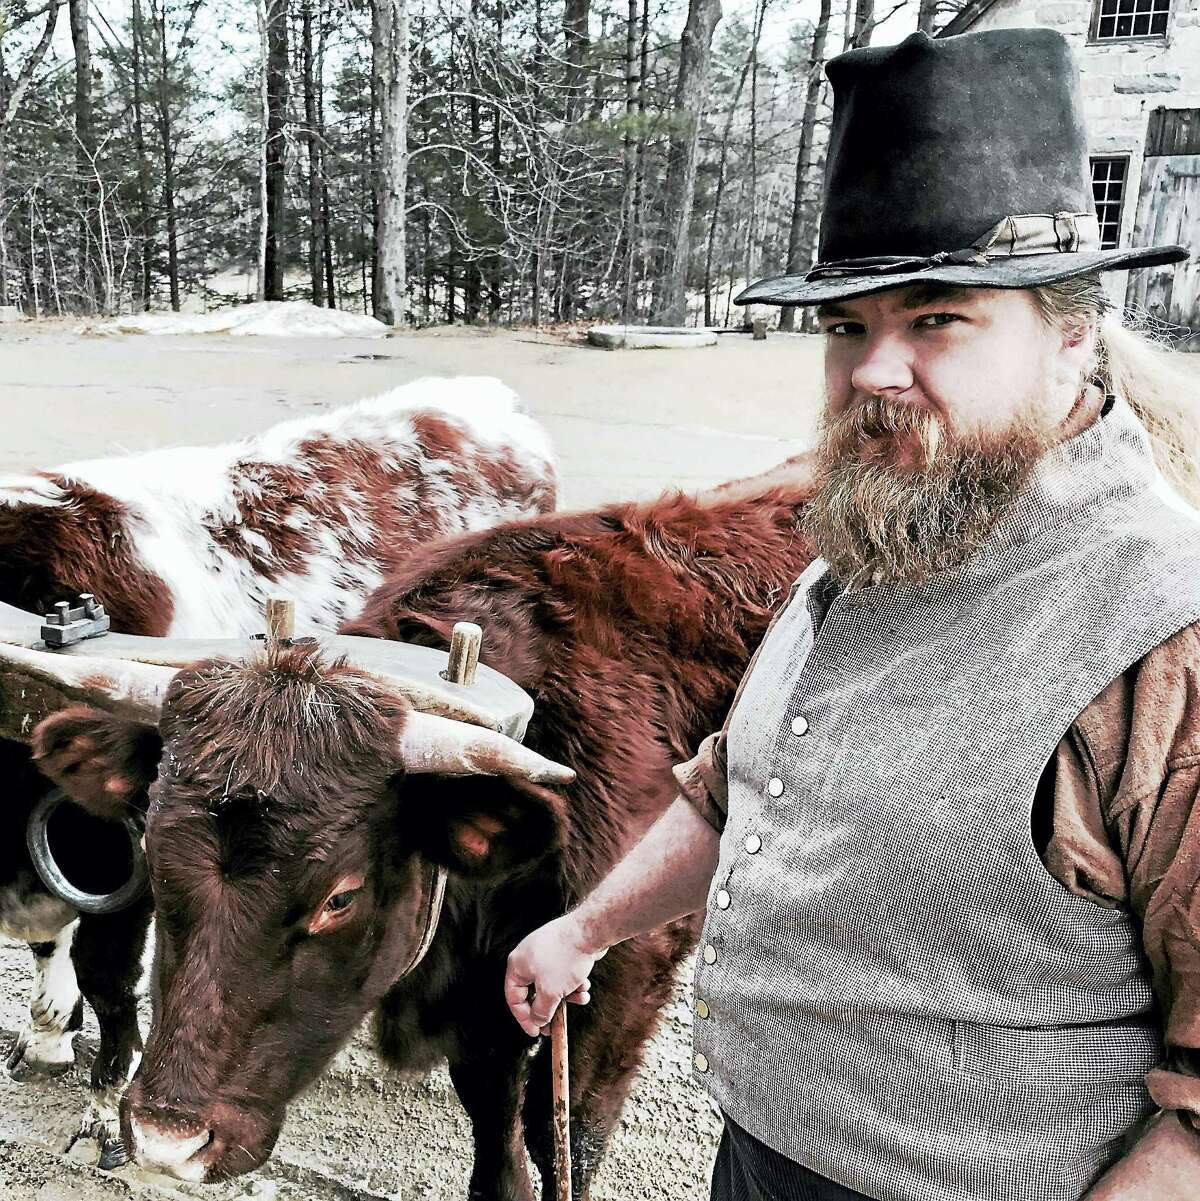 """Dave Hruska as the Teamster in """"Midwinter Mischief"""" at Old Sturbridge Village."""